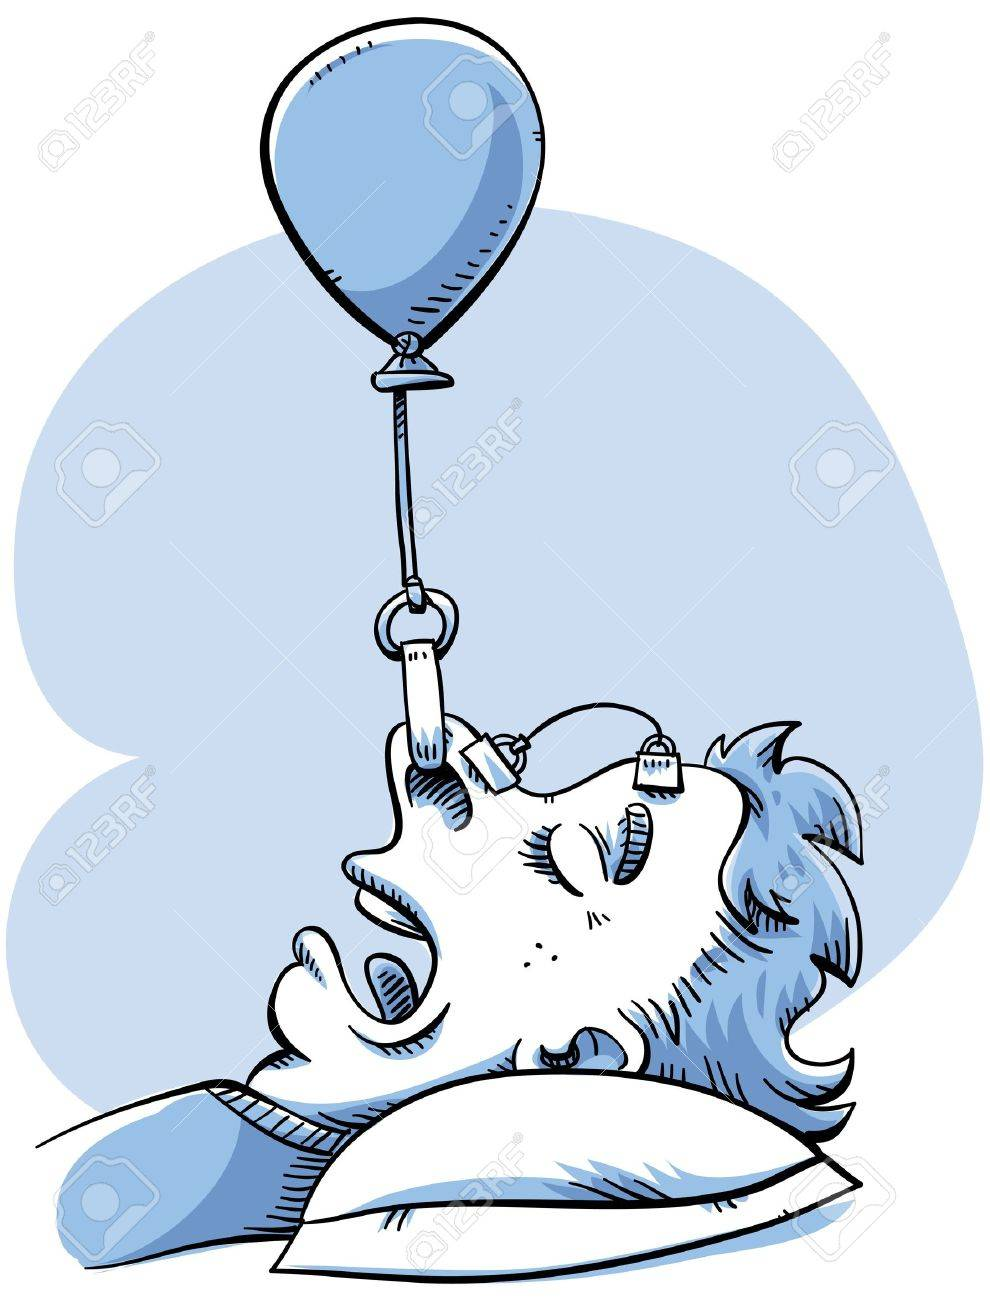 A woman rigs a balloon device to help her stop snoring. Stock Photo - 16976873